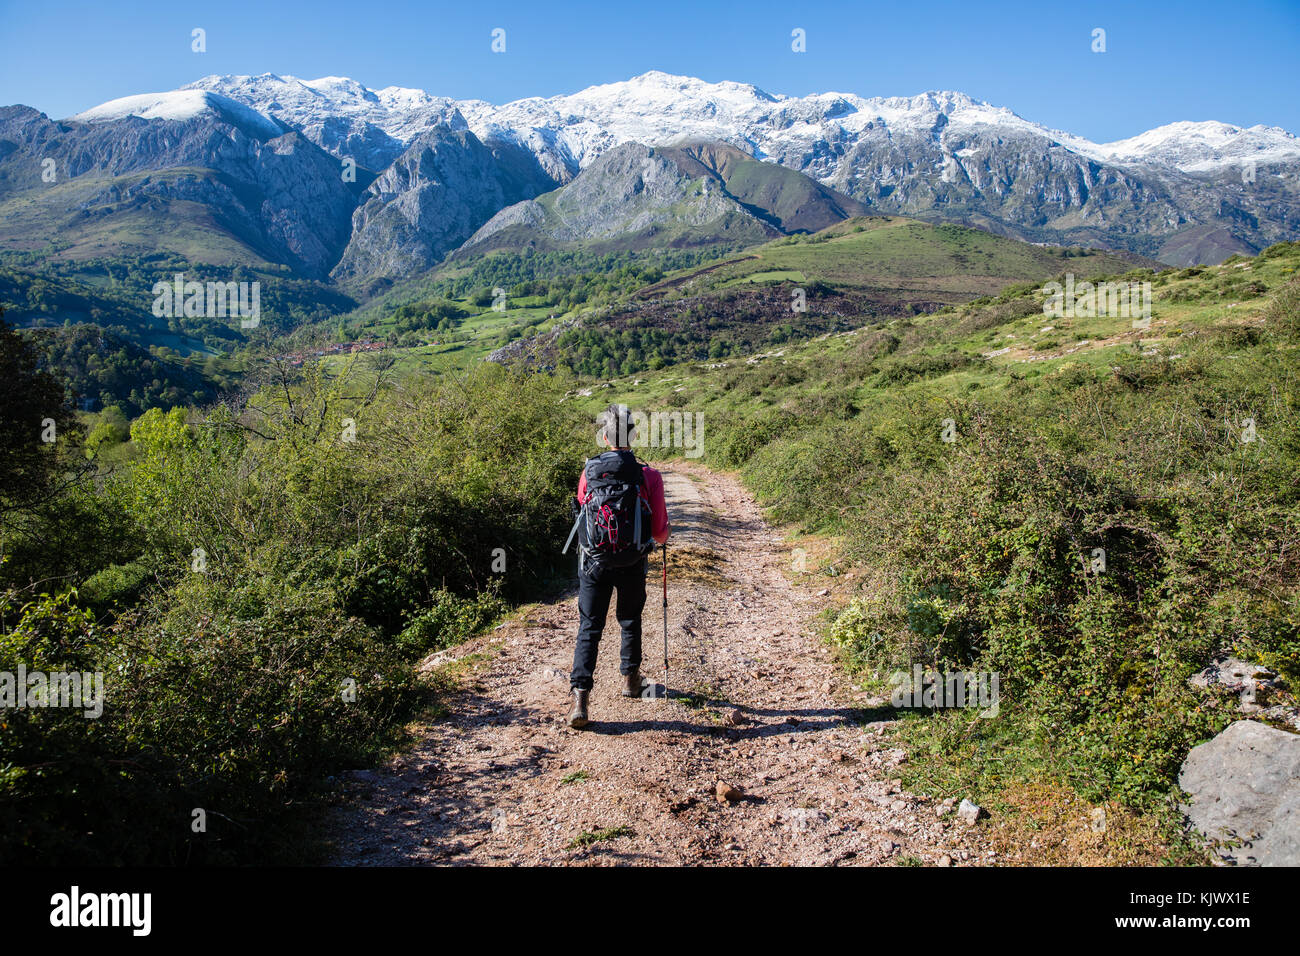 A female hiker walking on a track in the foothills of the Picos de Europa near Pandielo in northern Spian - Stock Image